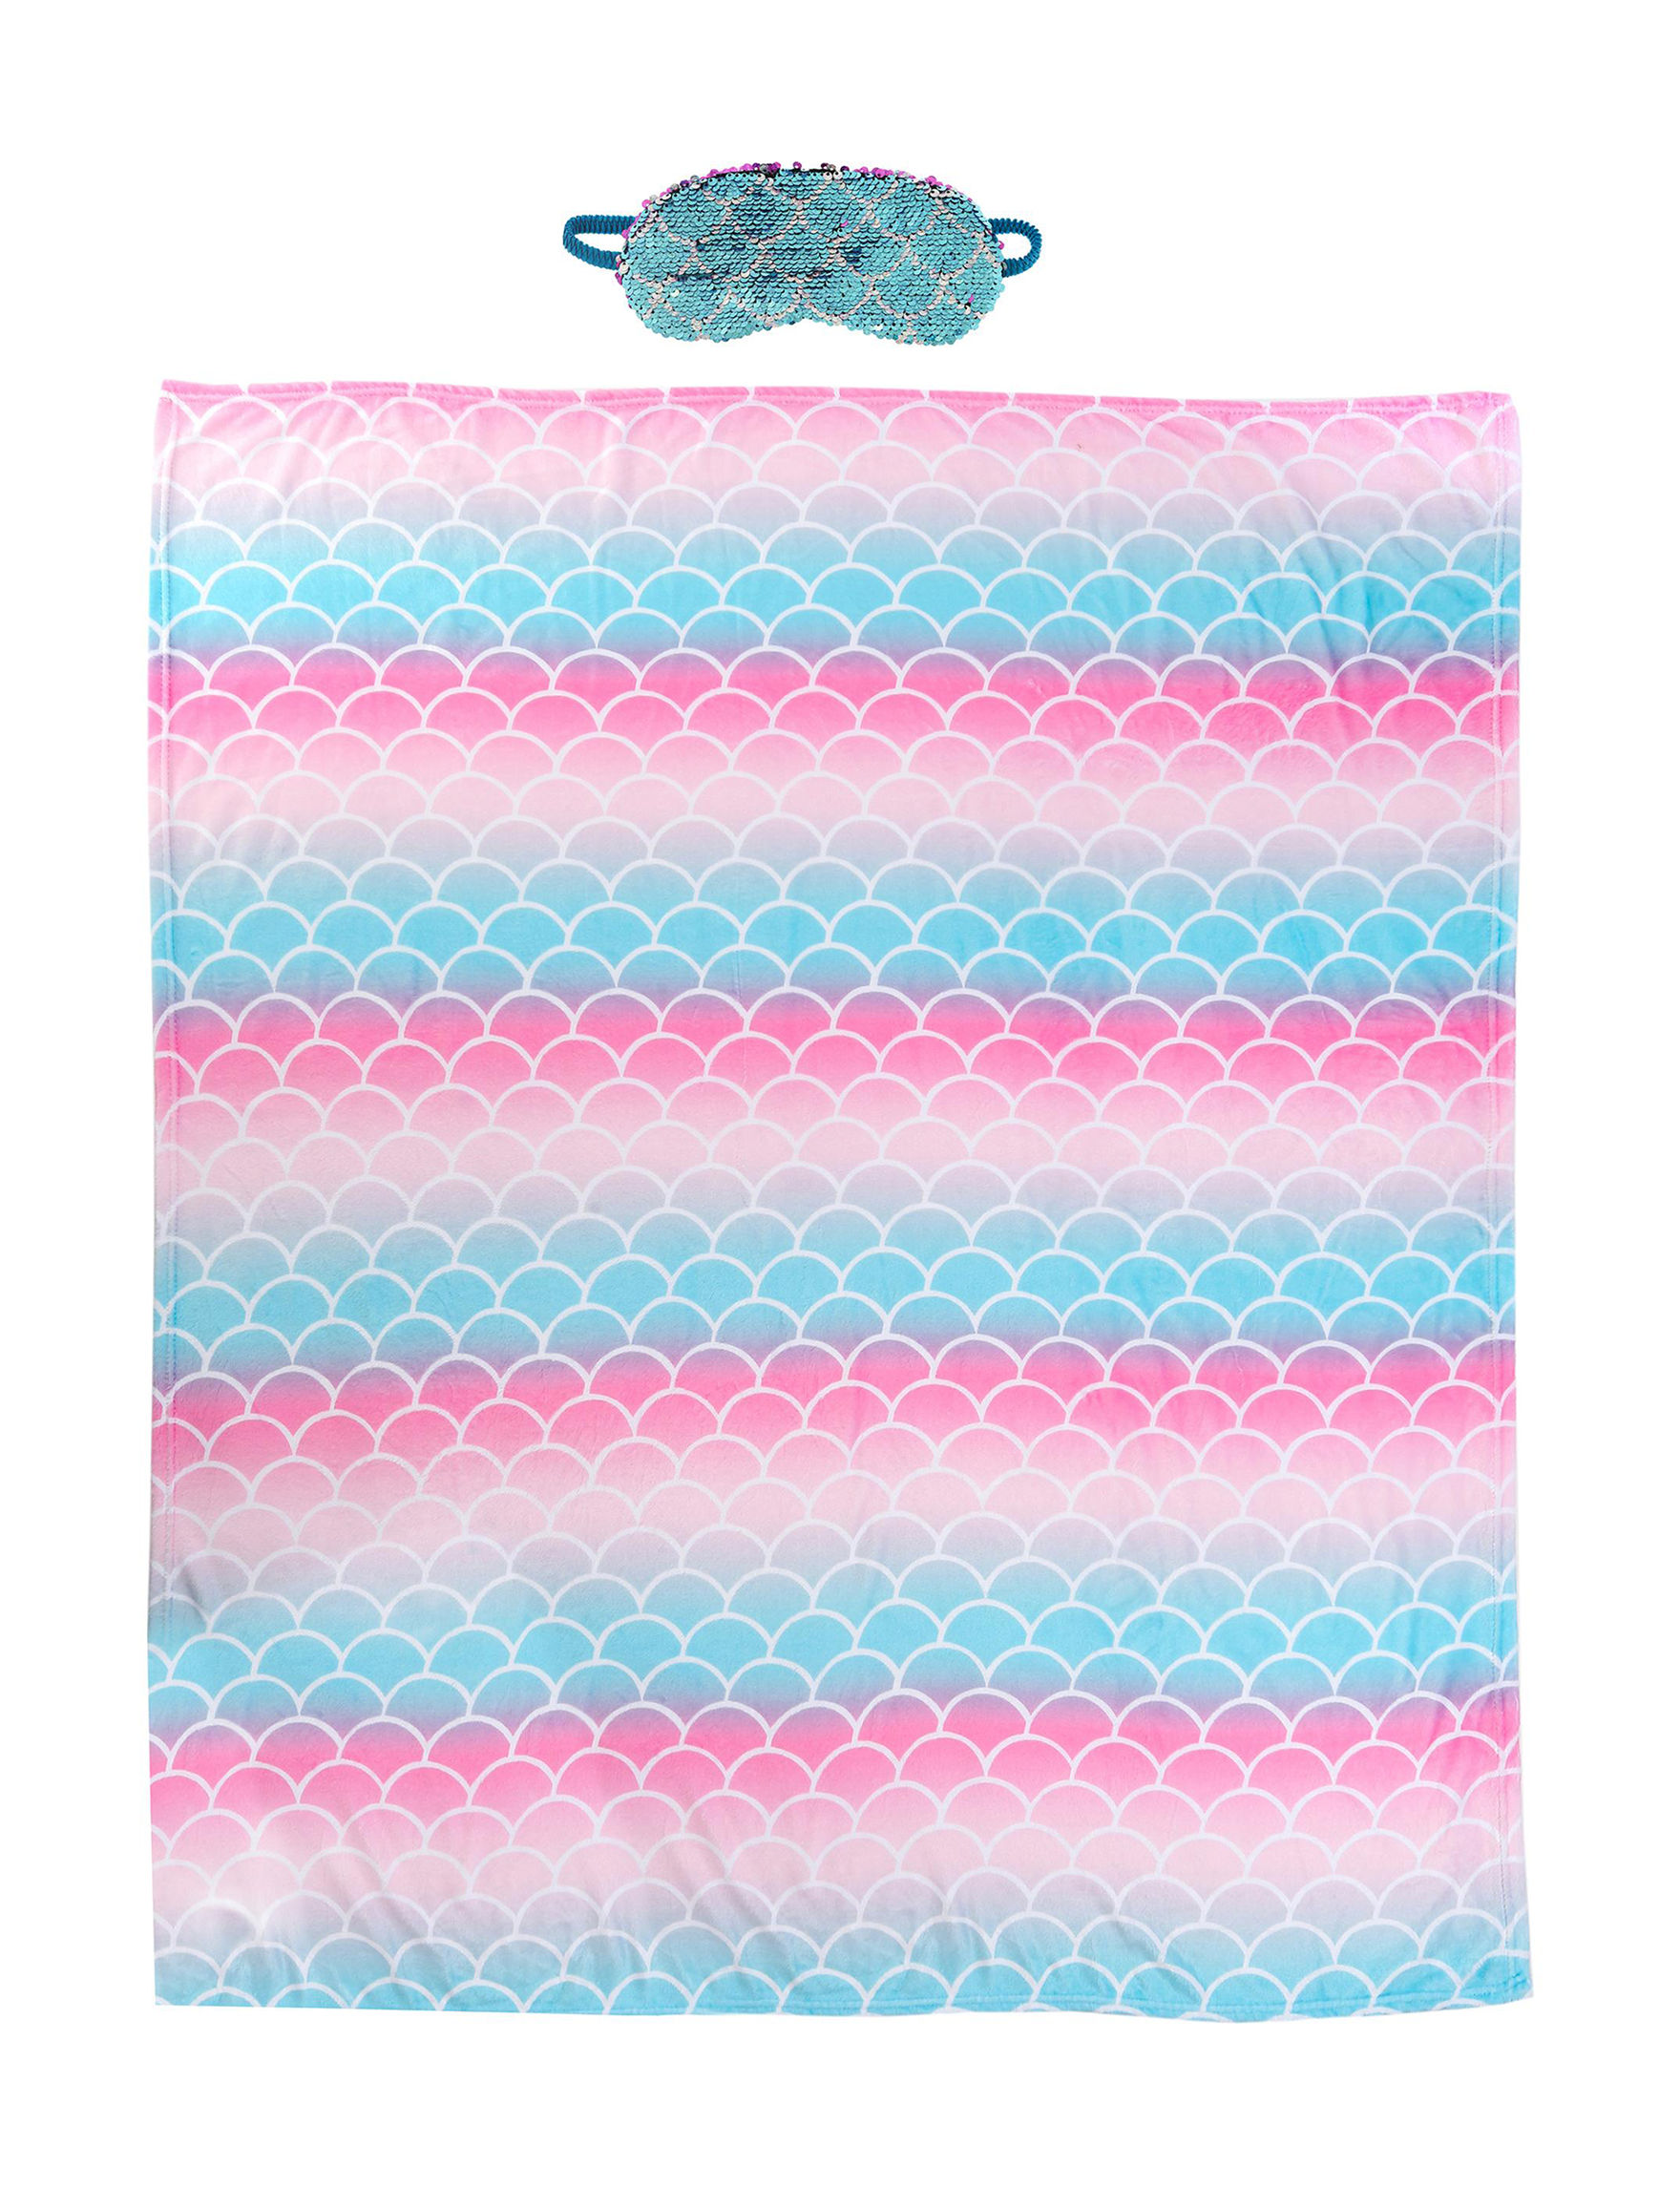 Capelli Pink / Turquoise Blankets & Throws